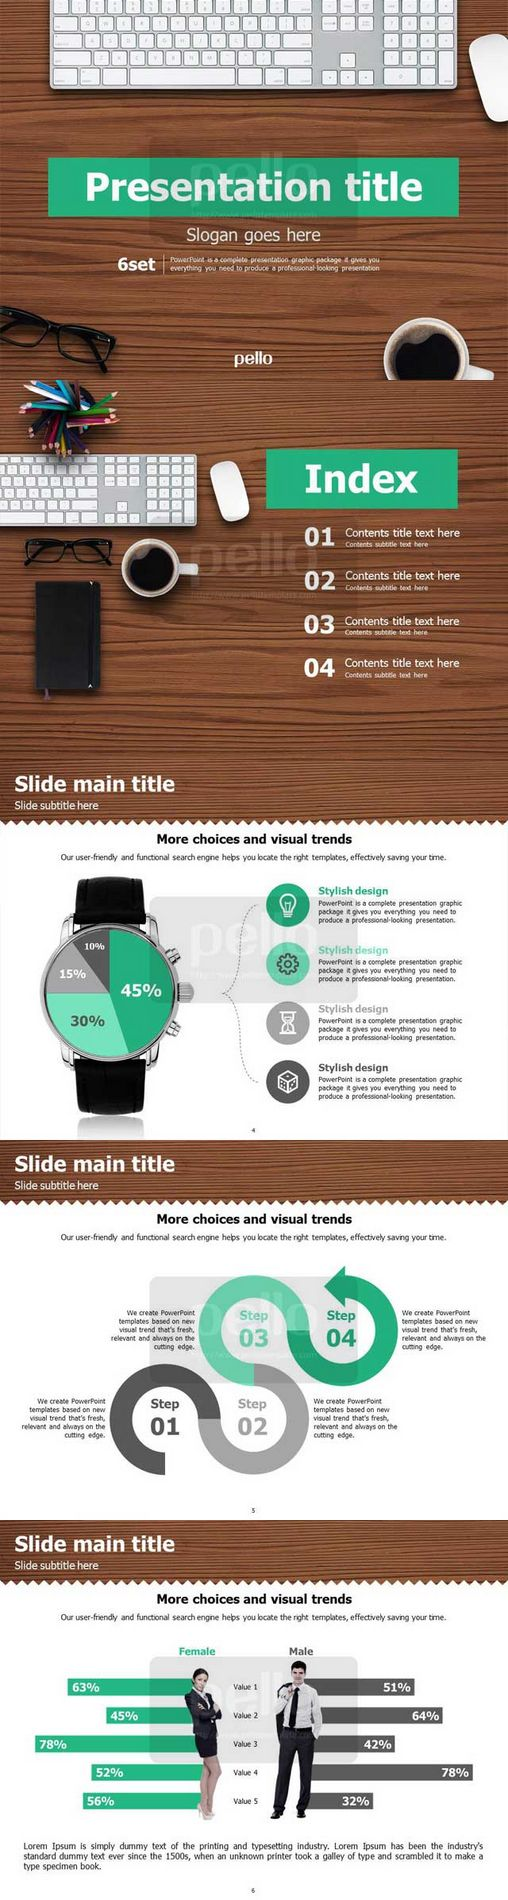 85 best good pello ppt templates images on pinterest ppt templates office desk features 6 full hd slides all elements editable ppt templatemicrosoft powerpoint 2007business toneelgroepblik Image collections